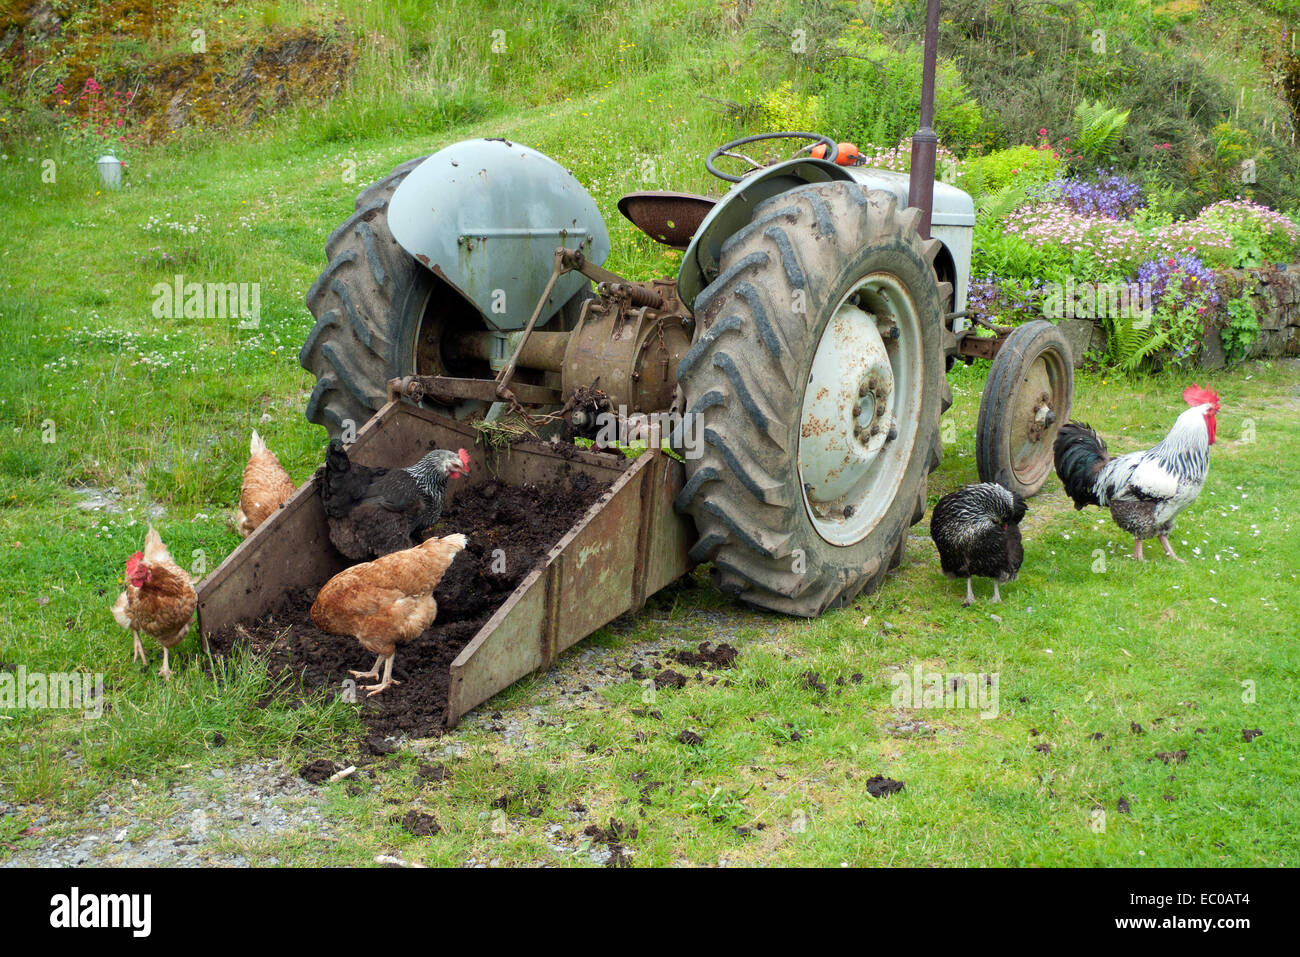 Free range chickens hens and cockerel pecking at manure in transport box of tractor in farmyard in Wales UK  KATHY - Stock Image